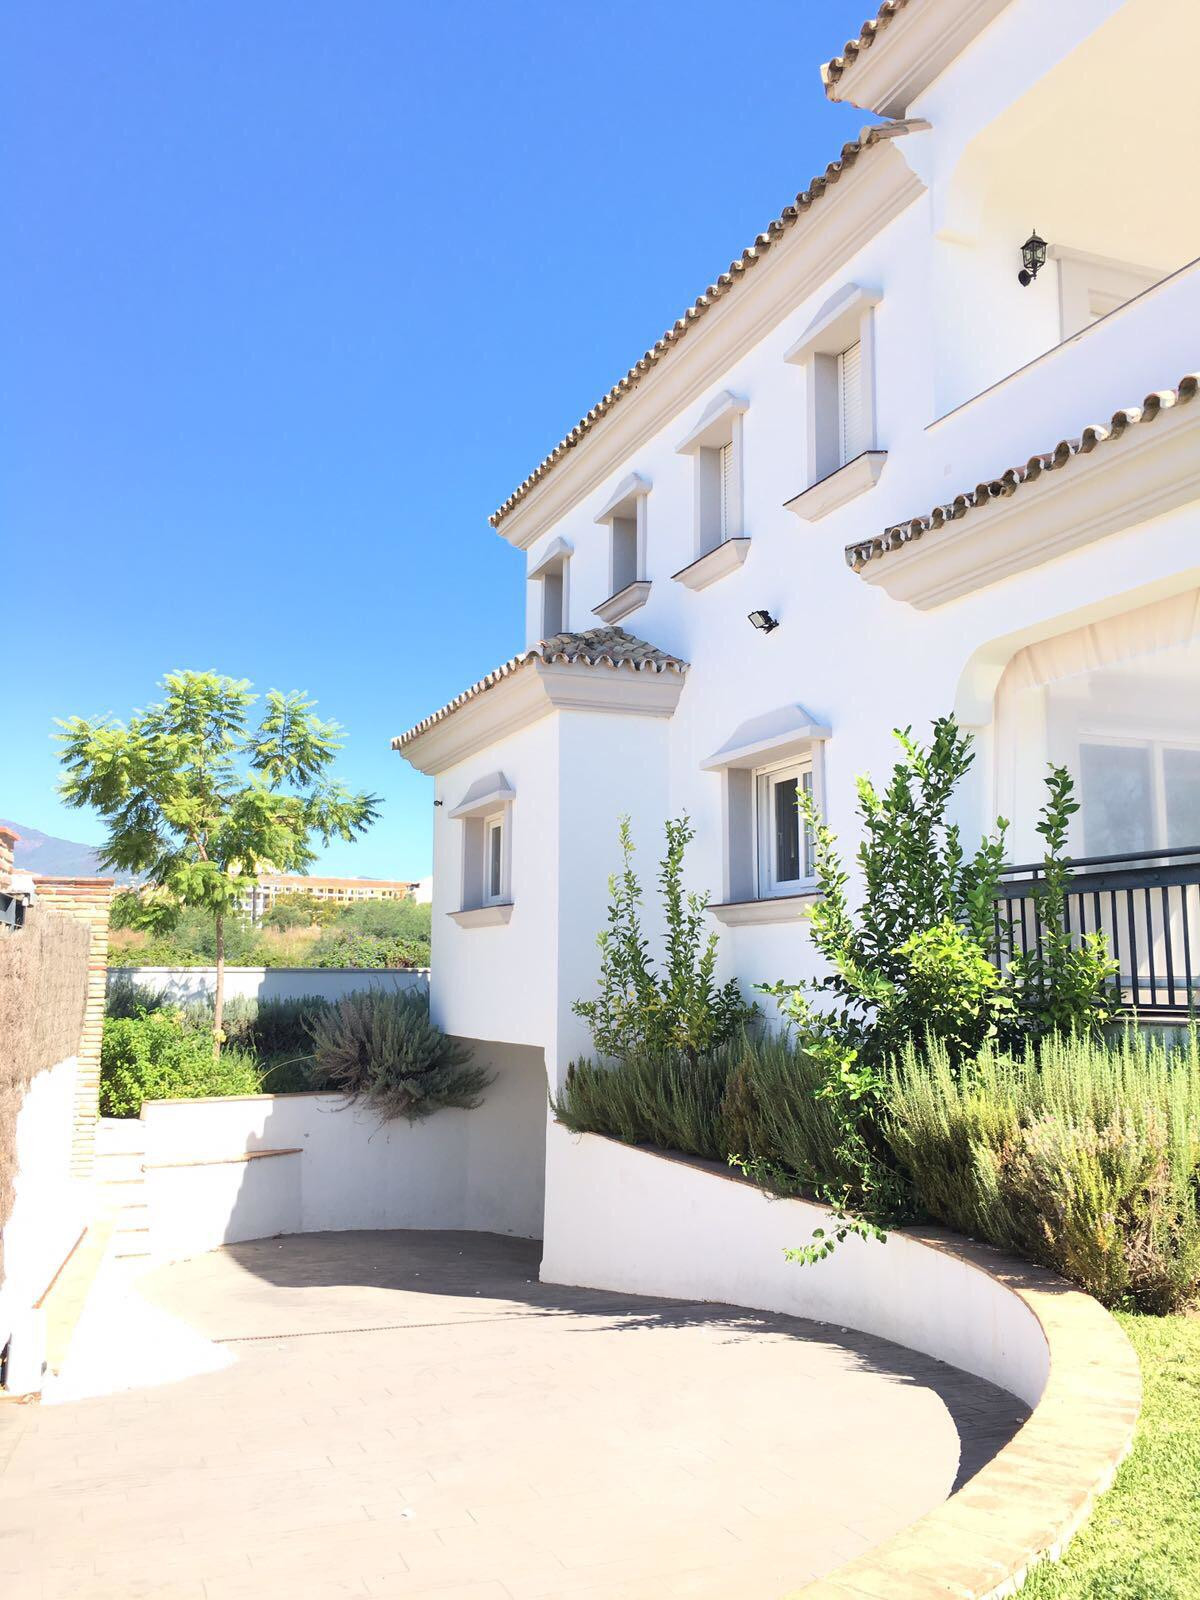 Villa - Detached ( R3522175) 3